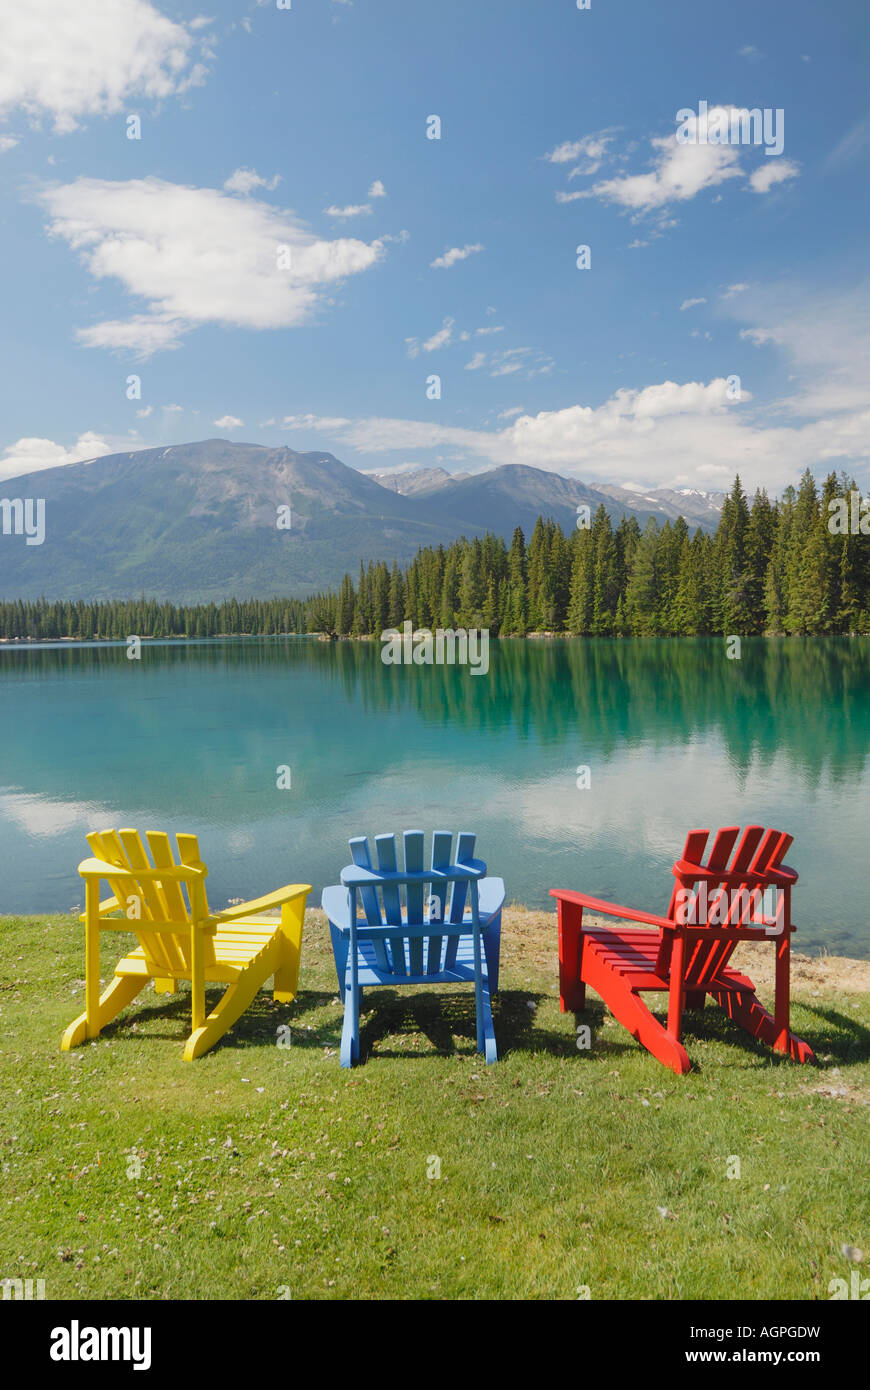 View of Adirondack lounge chairs in front of Lake Beauvert at Fairmont Jasper Park Lodge in Alberta Canada - Stock Image